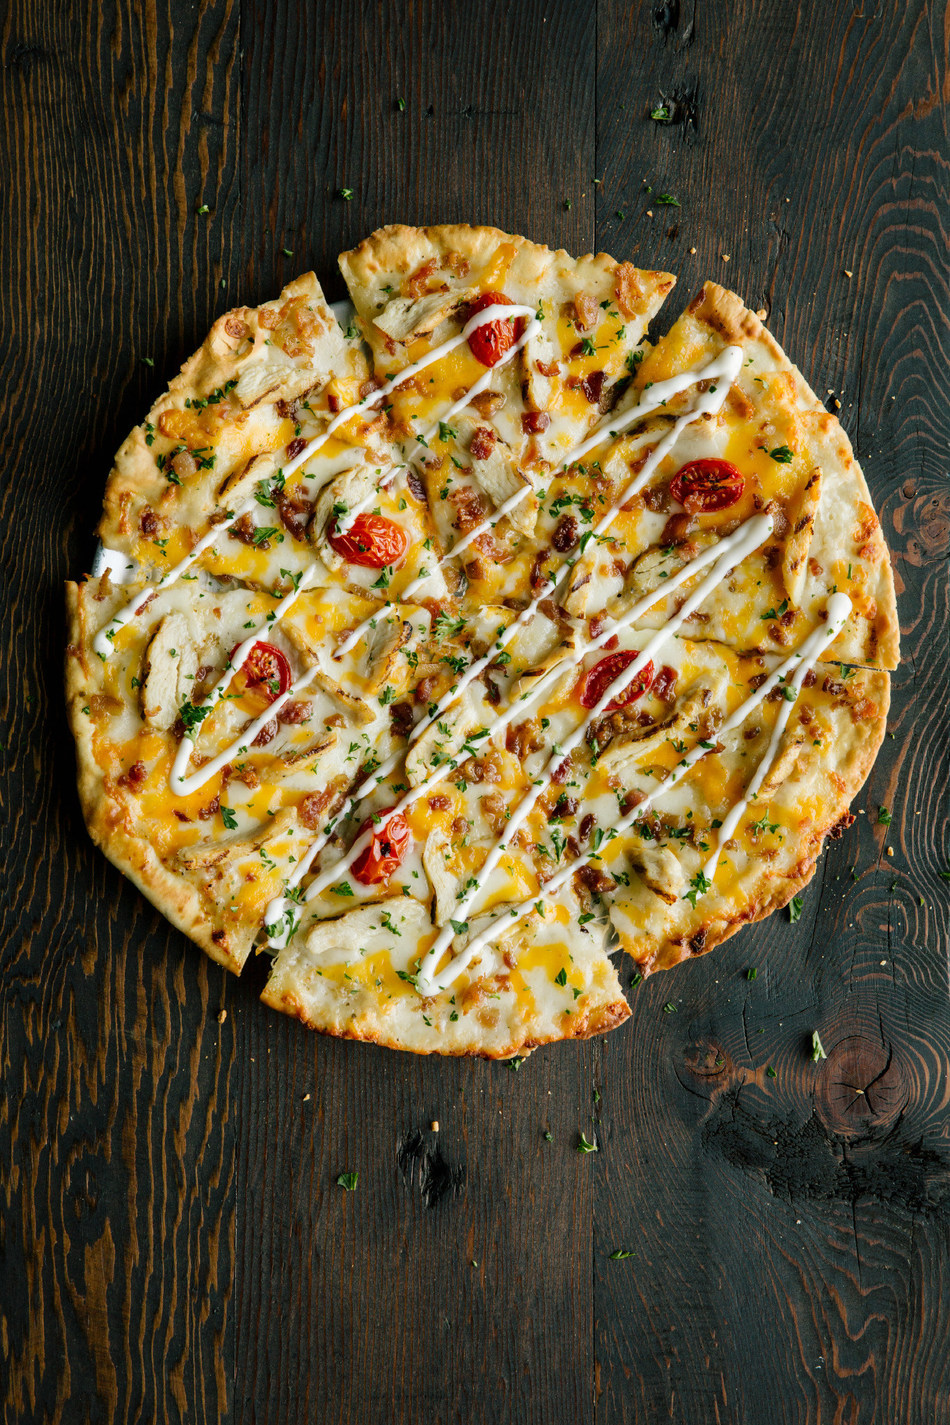 Pie Five goes 'Pro-Ranch' with new Chicken Bacon Ranch pizza starting May 23